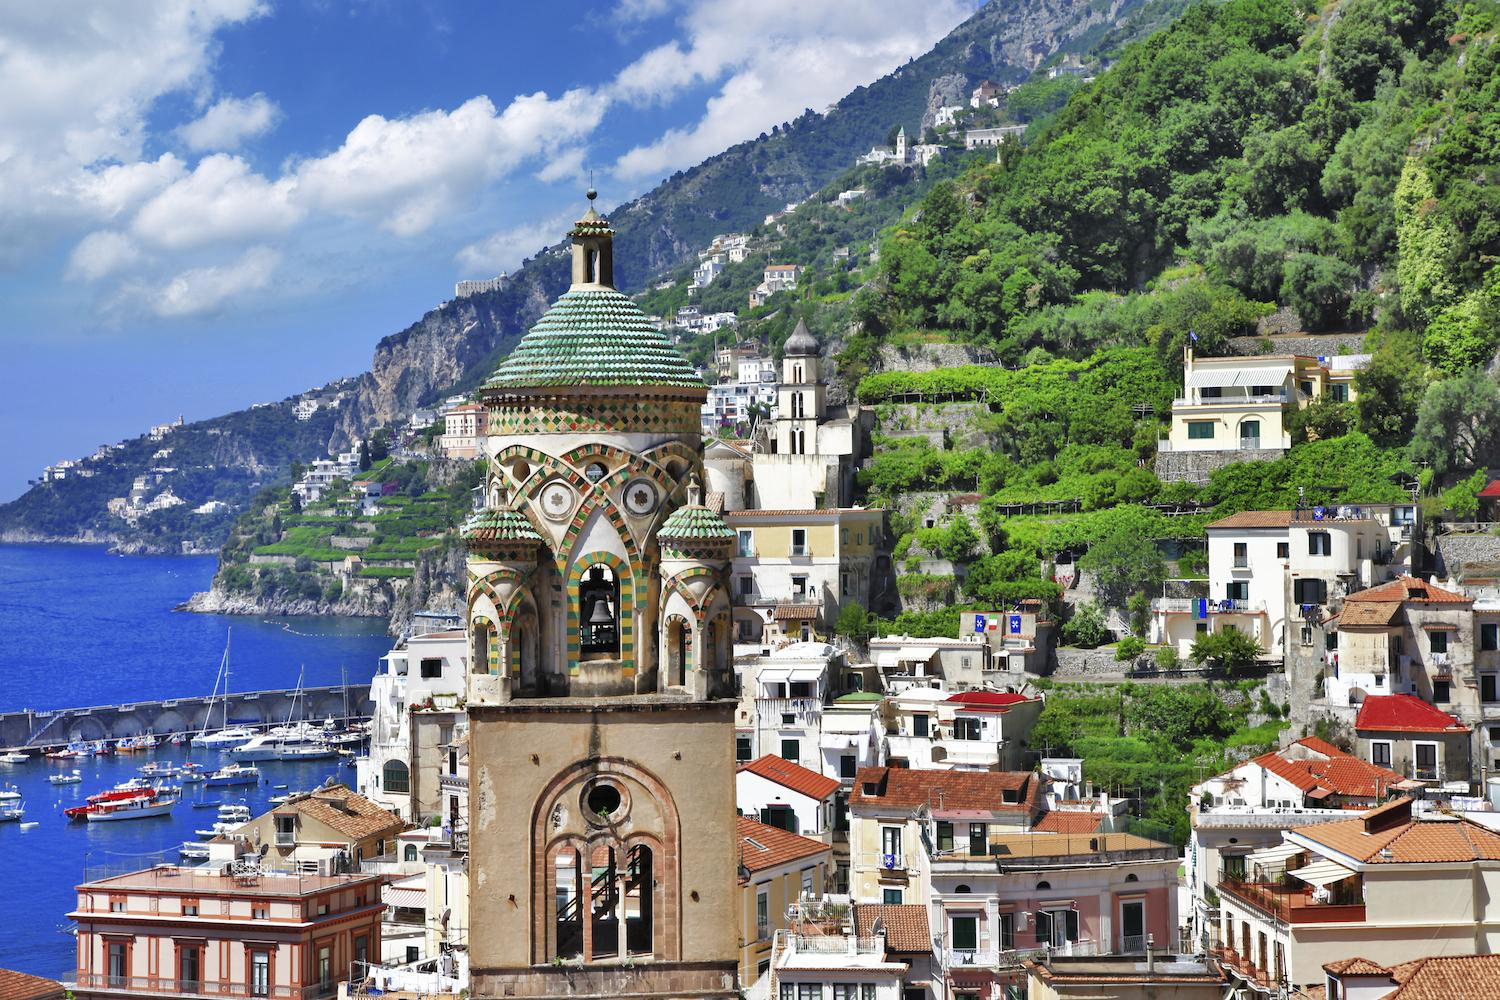 Explore the beautiful Amalfi Coast